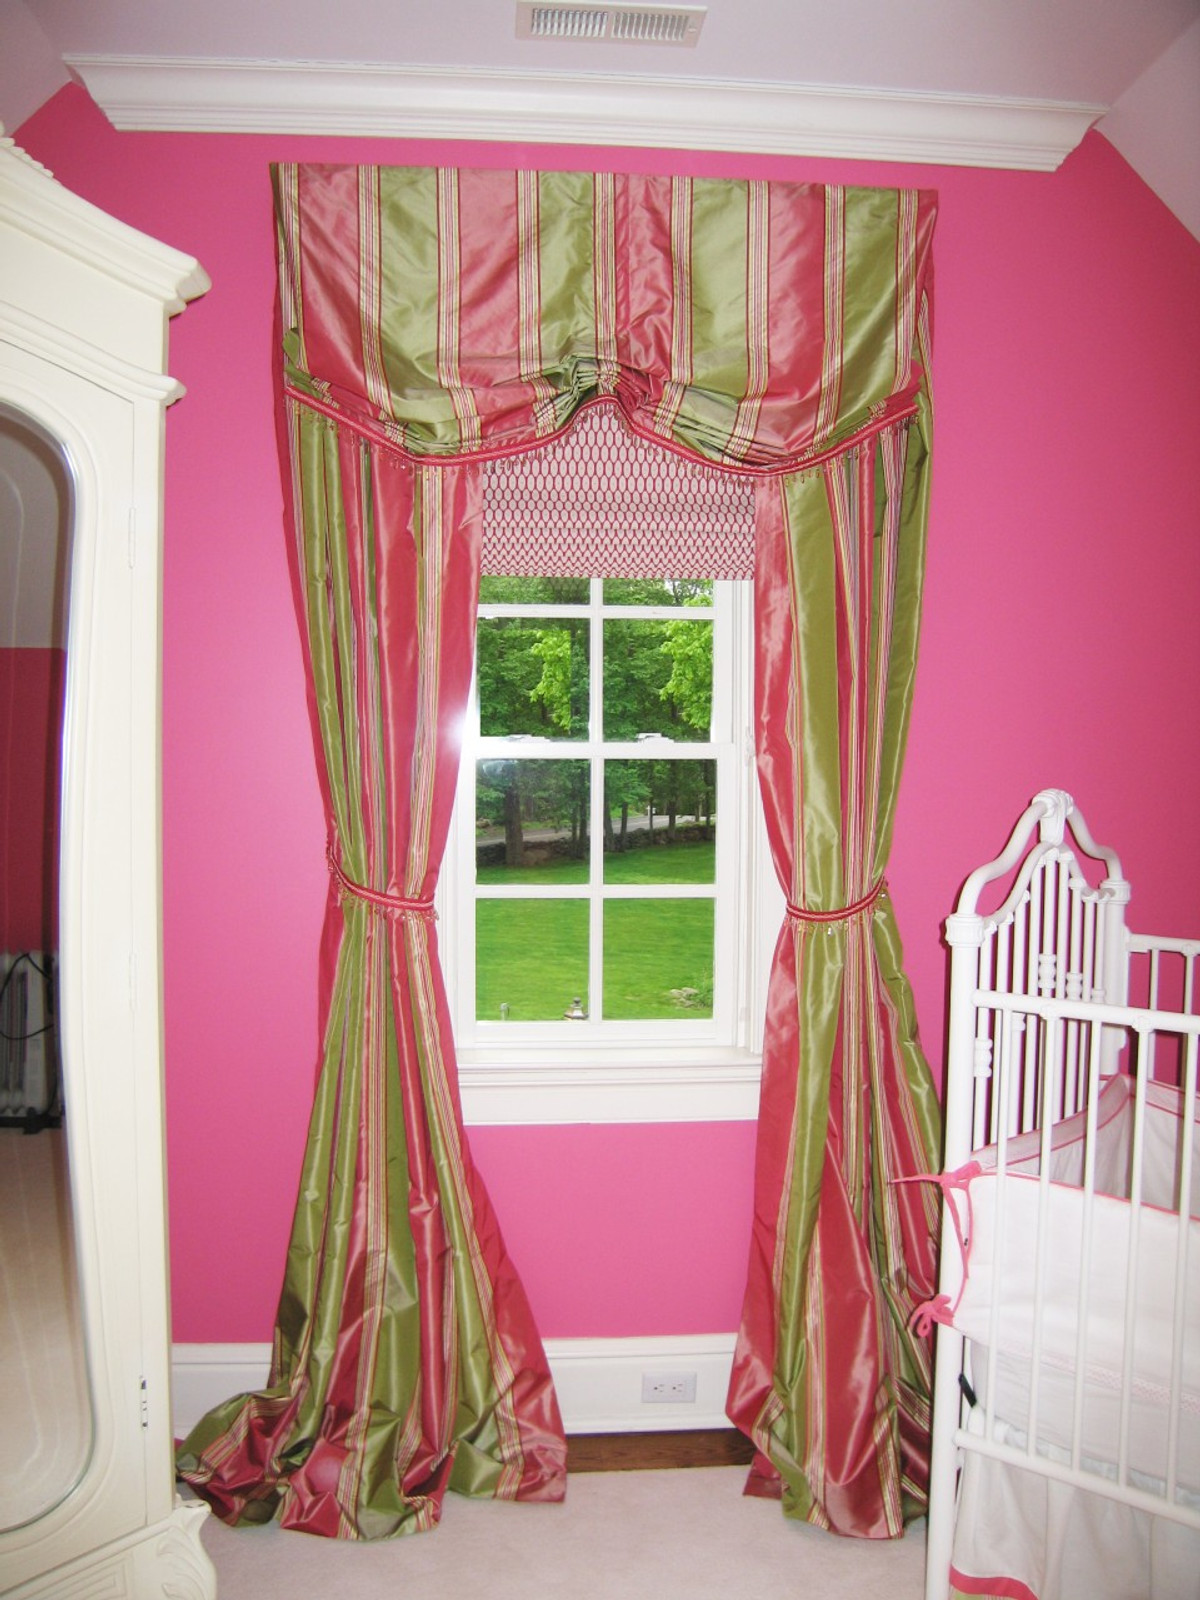 Enjoyable Window Seat Valance Roman Shades Cushions And Pillows Customarchery Wood Chair Design Ideas Customarcherynet